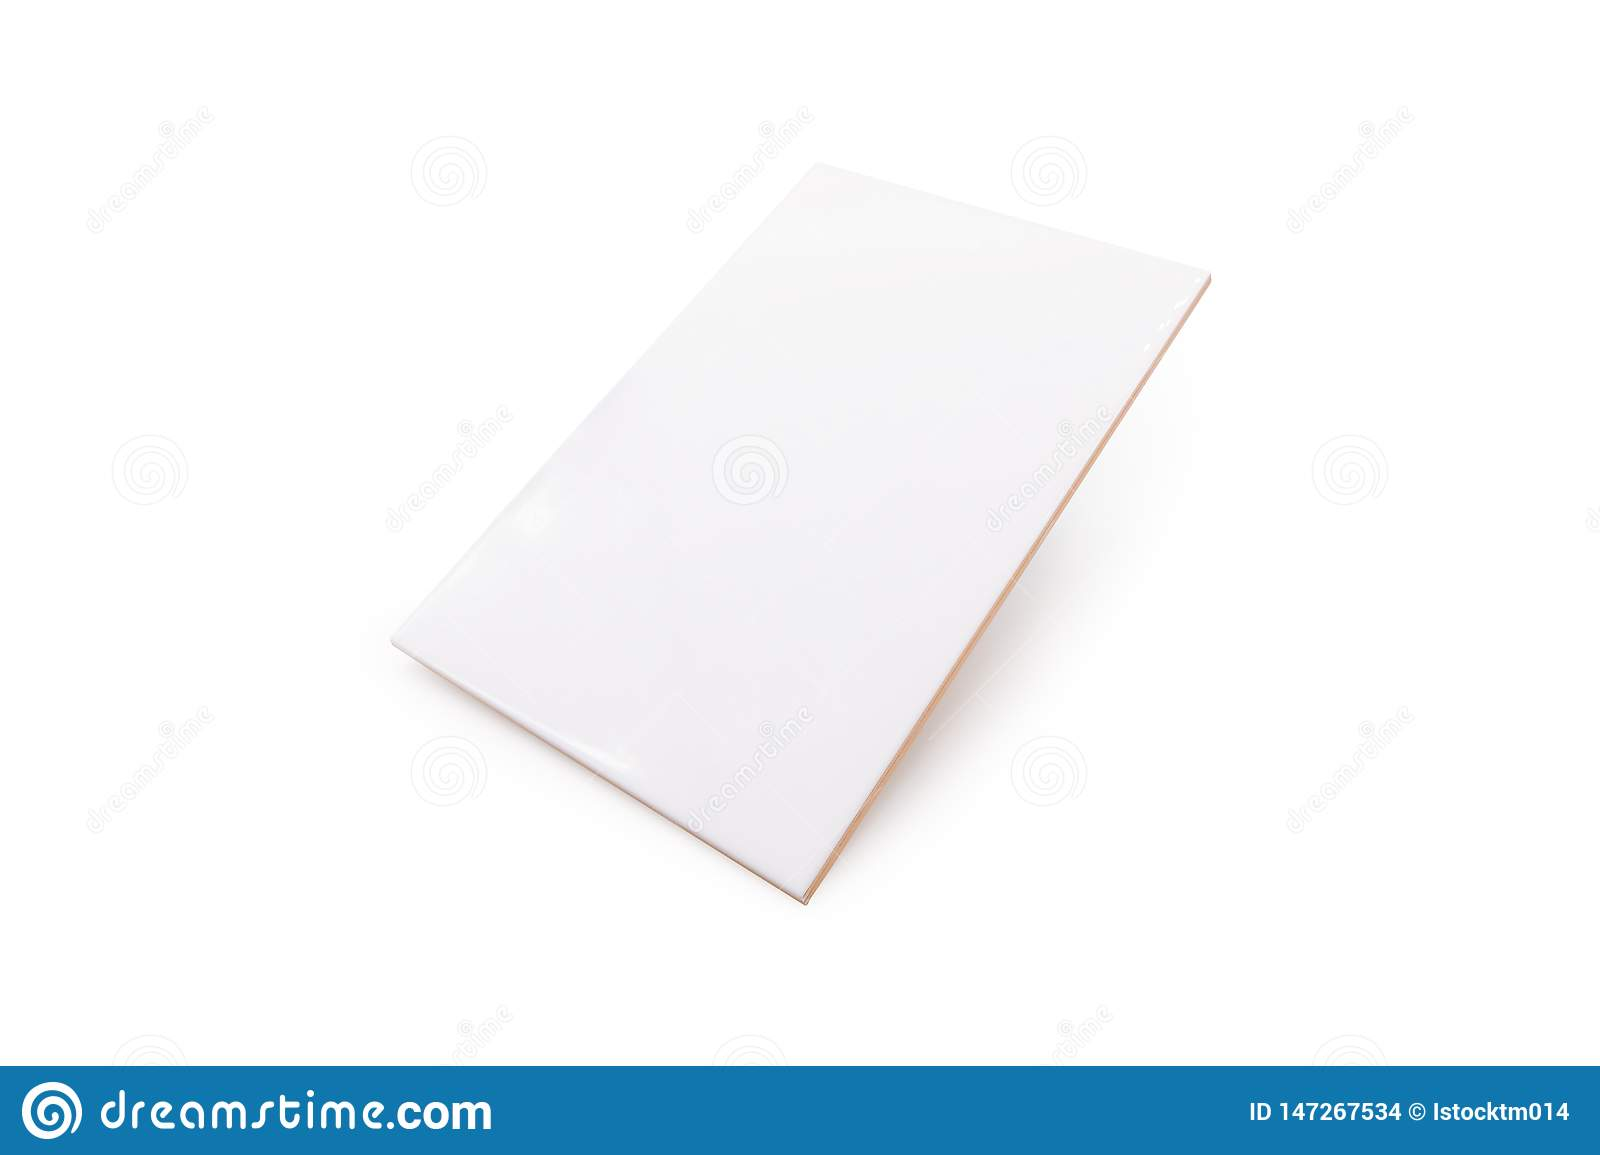 Ceramic tiles on isolated background with clipping path